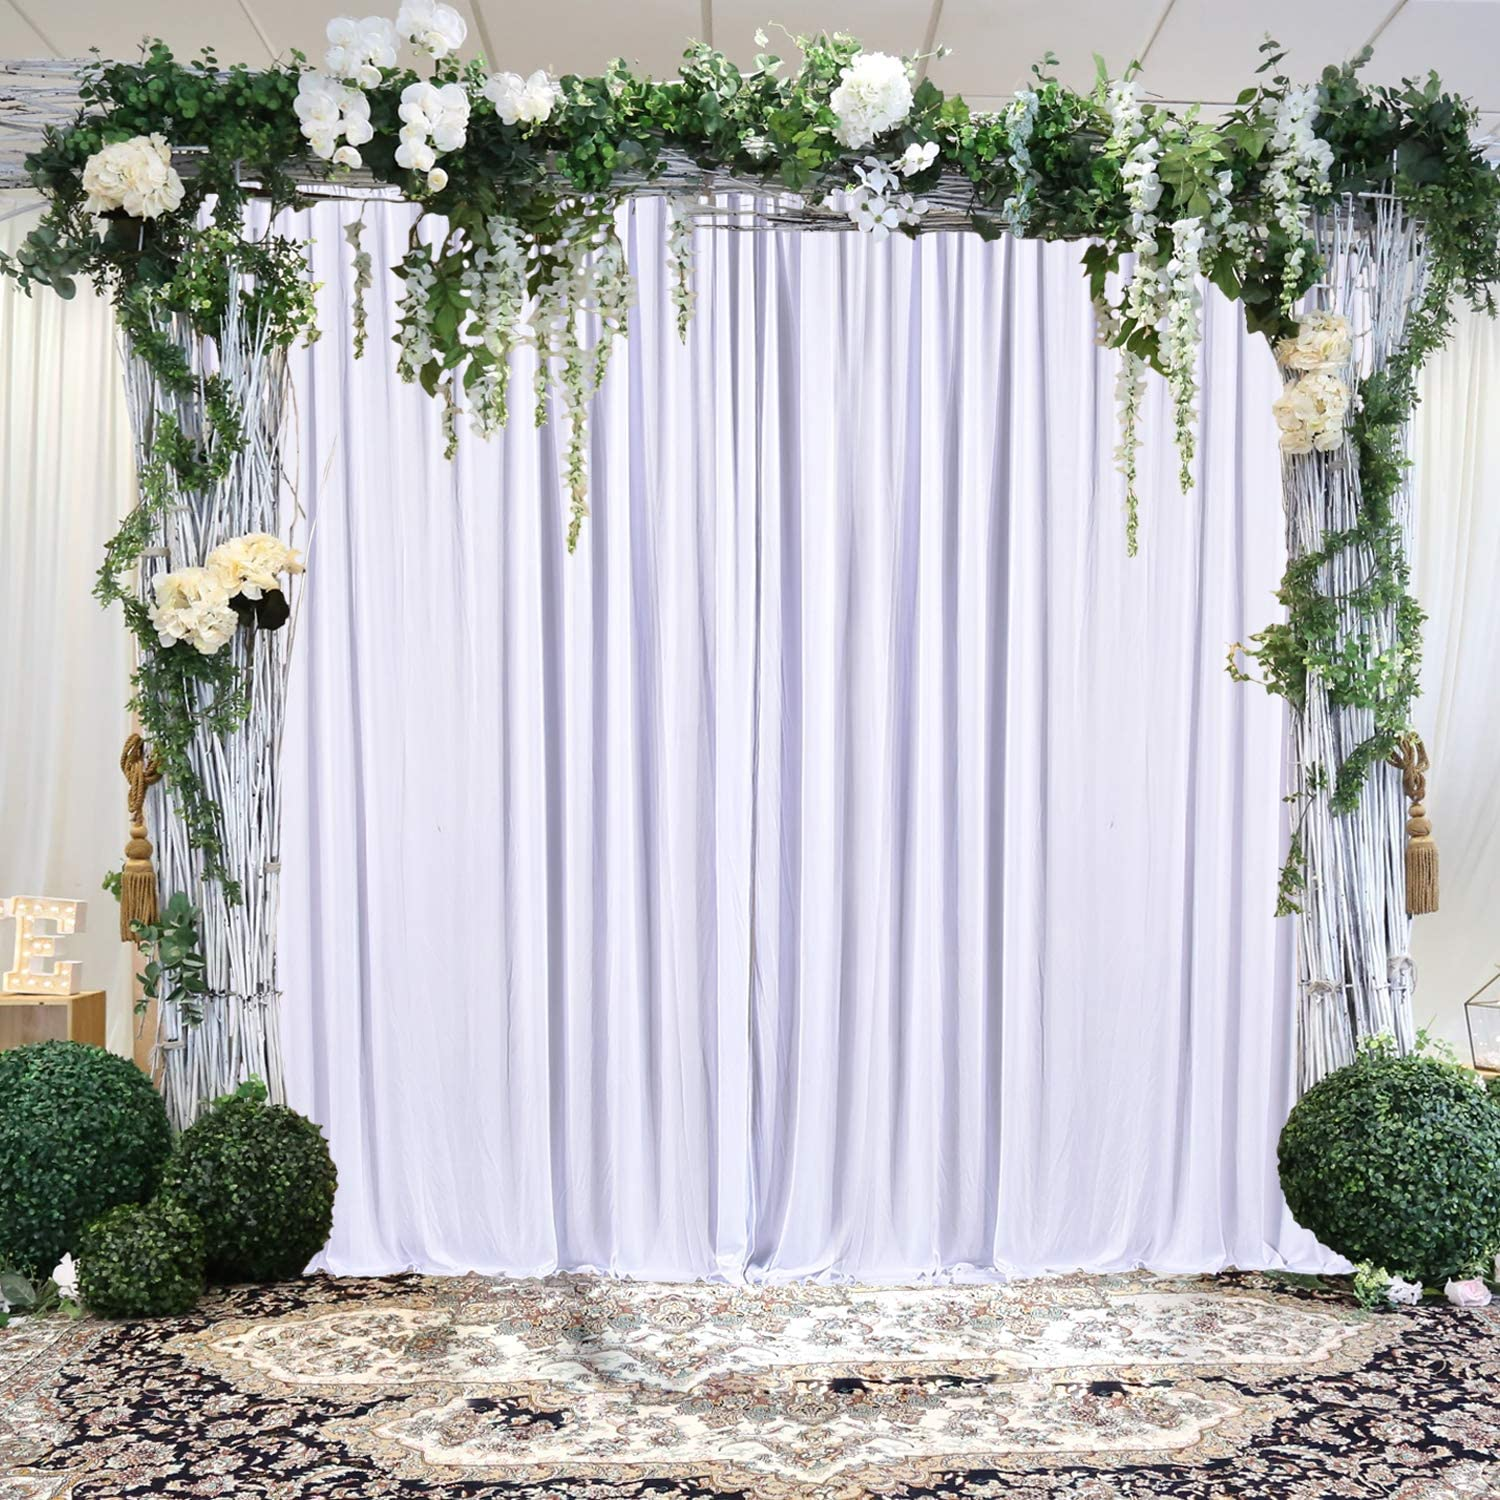 White Backdrop Curtain for Parties Photo Backdrop Wedding Baby Shower  Photography Background with Gold Curtain Tiebacks,Polyester Fabric,9 Panels  9ft